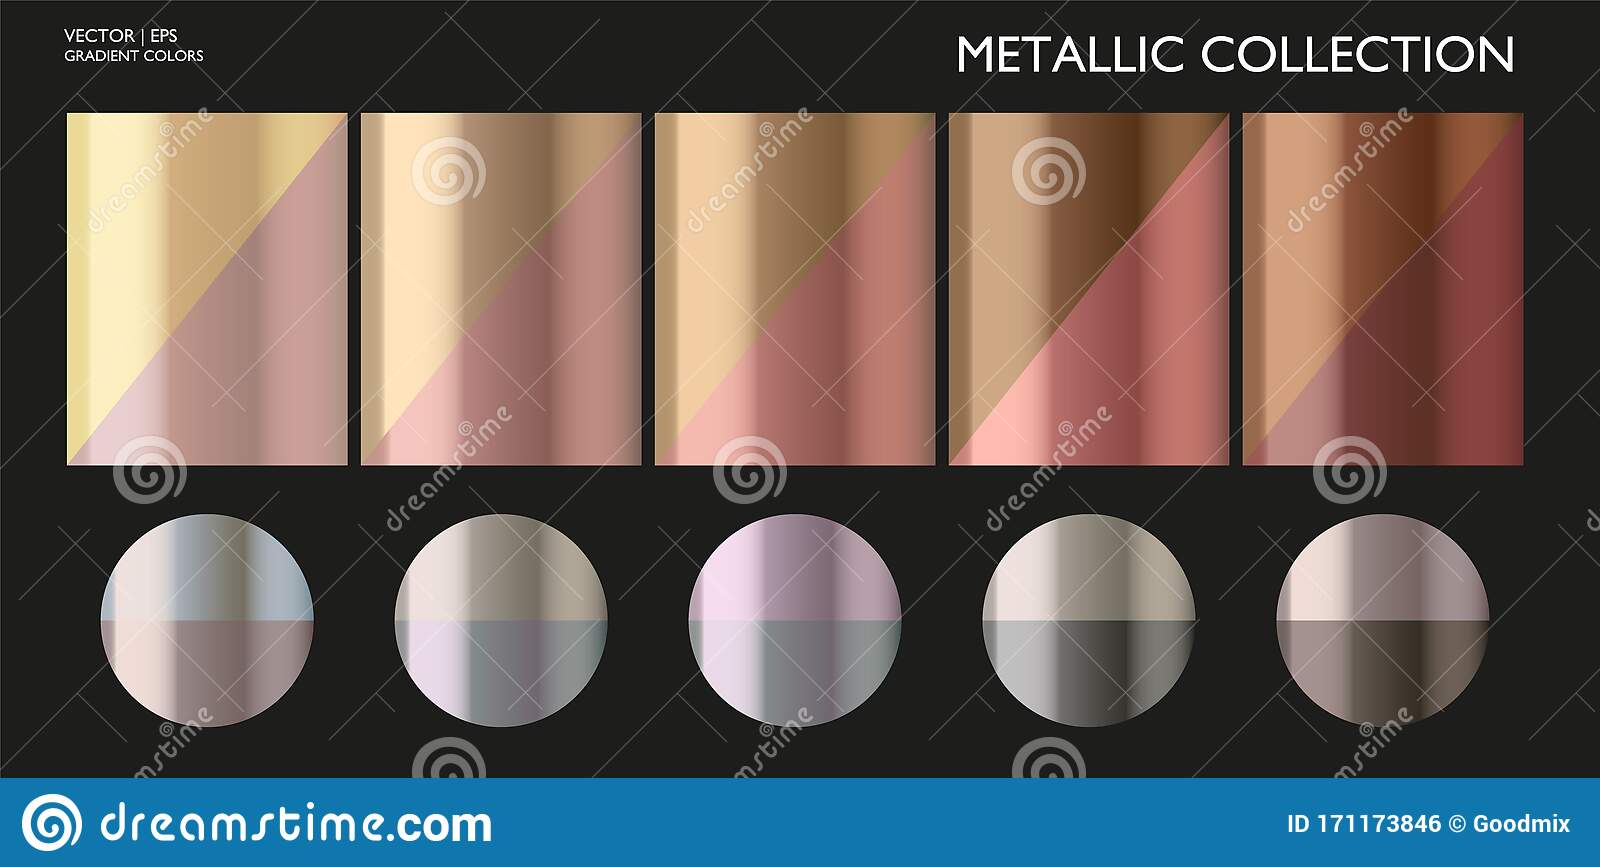 Metal Gradient Color Set Chrome Texture Surface Background Template For Screen Mobile Digital Web Metallic And Chromium Shade Editorial Photo Illustration Of Brassy Colors 171173846